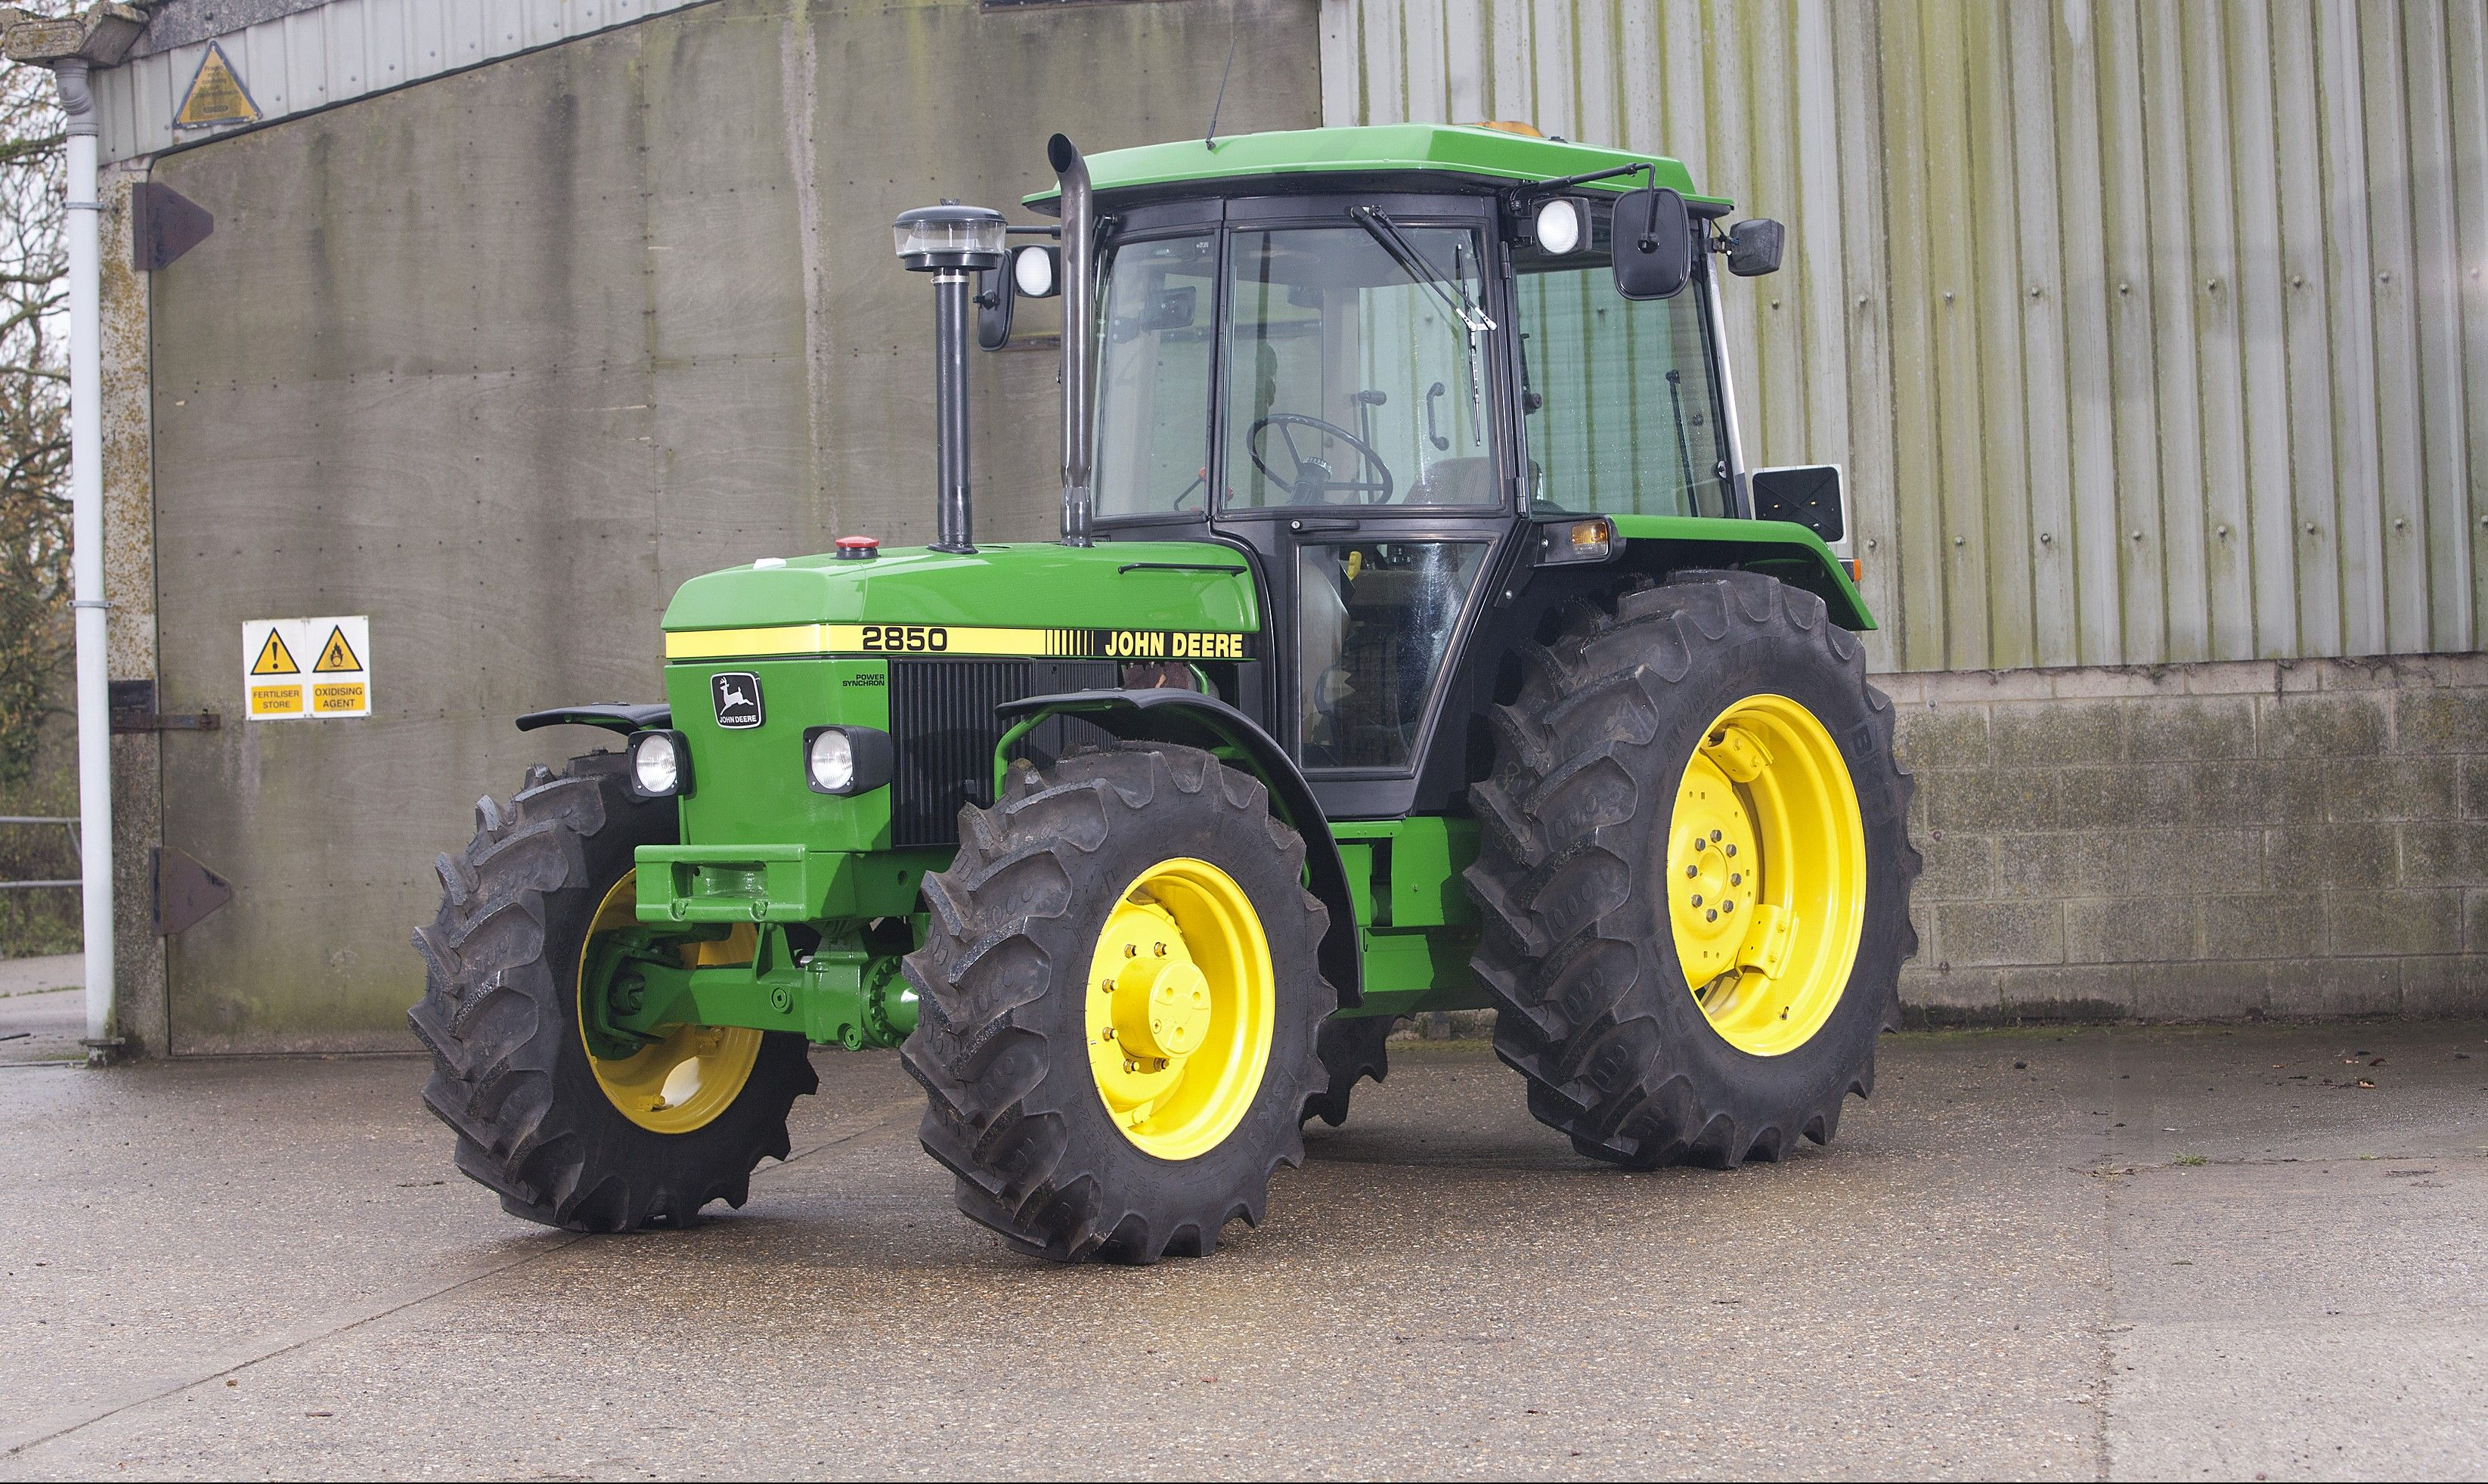 Jd 2850 for sale in uk zithromax